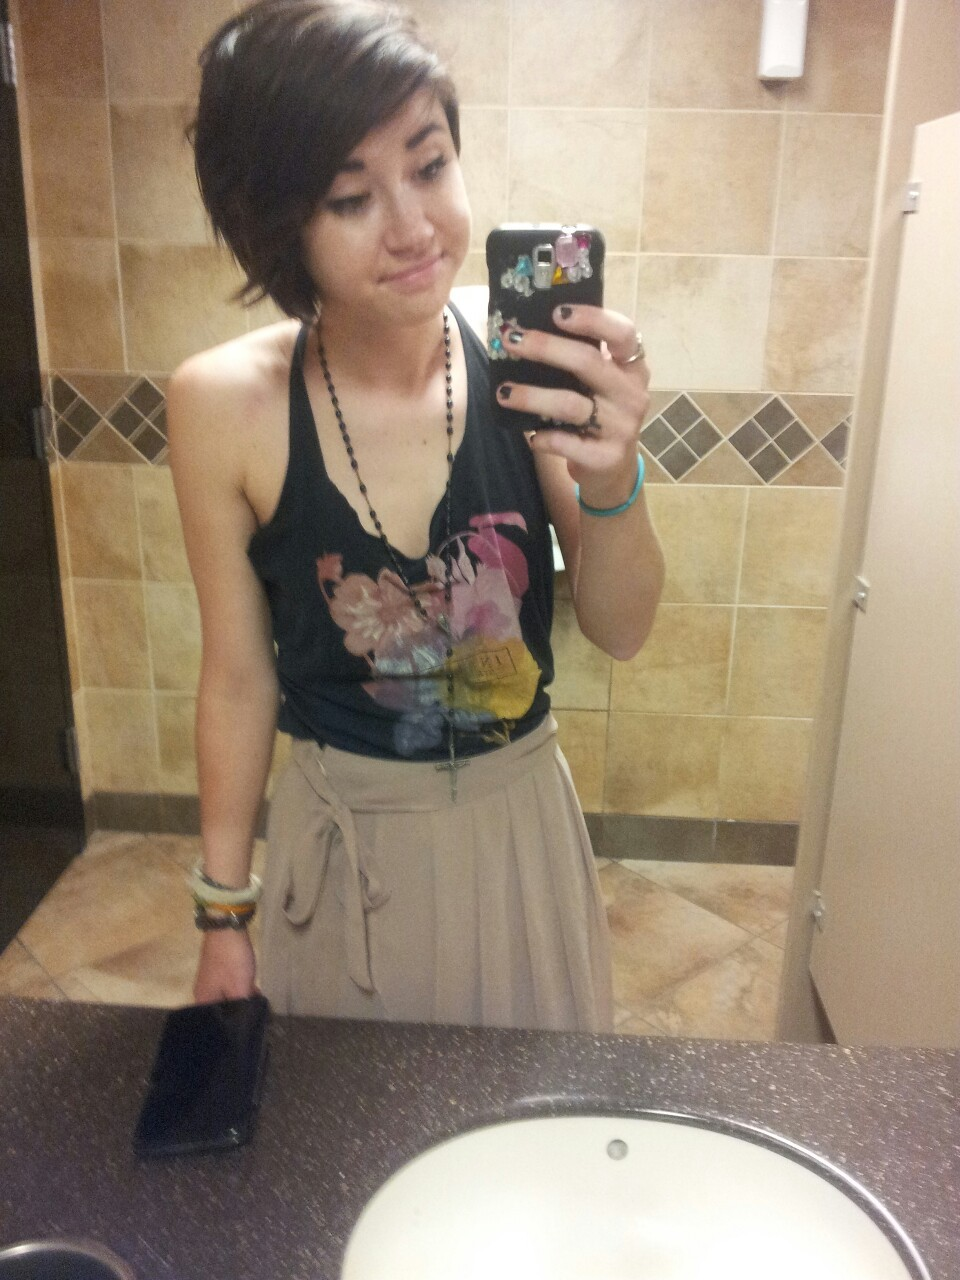 anthony told me i looked like kreayshawn today that is the best compliment i have ever received ok i am so happy